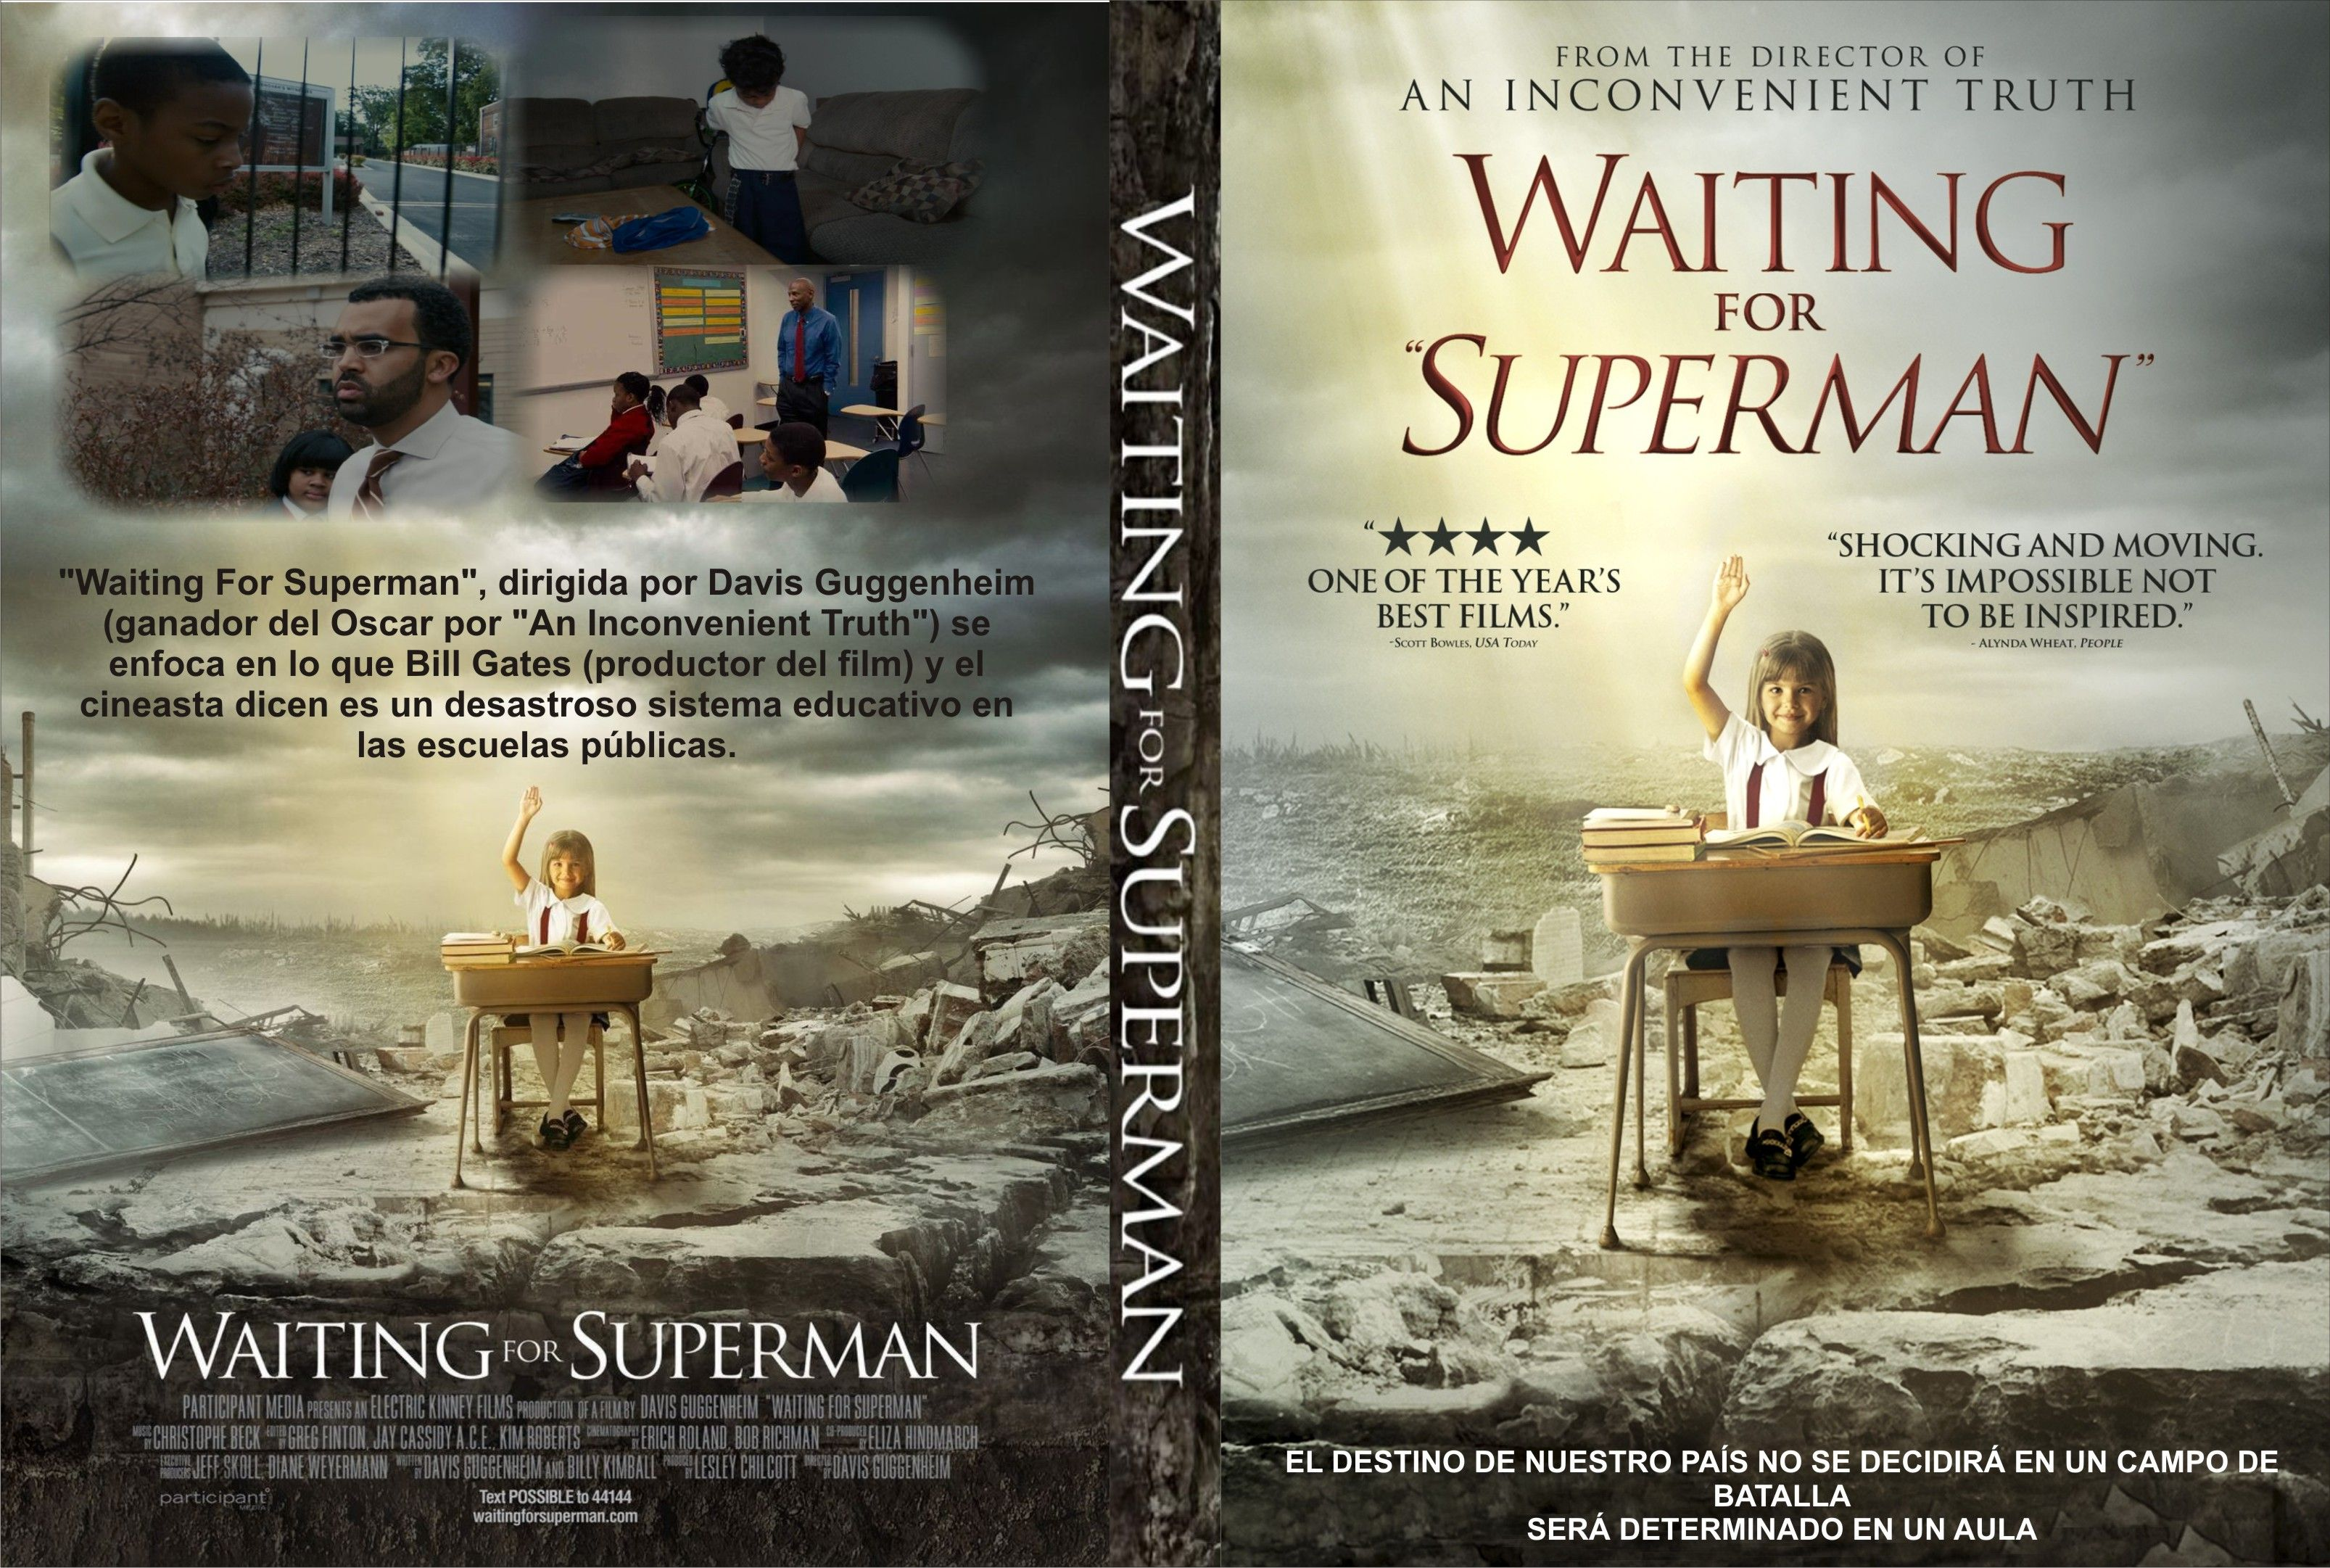 WaitingForSuperman